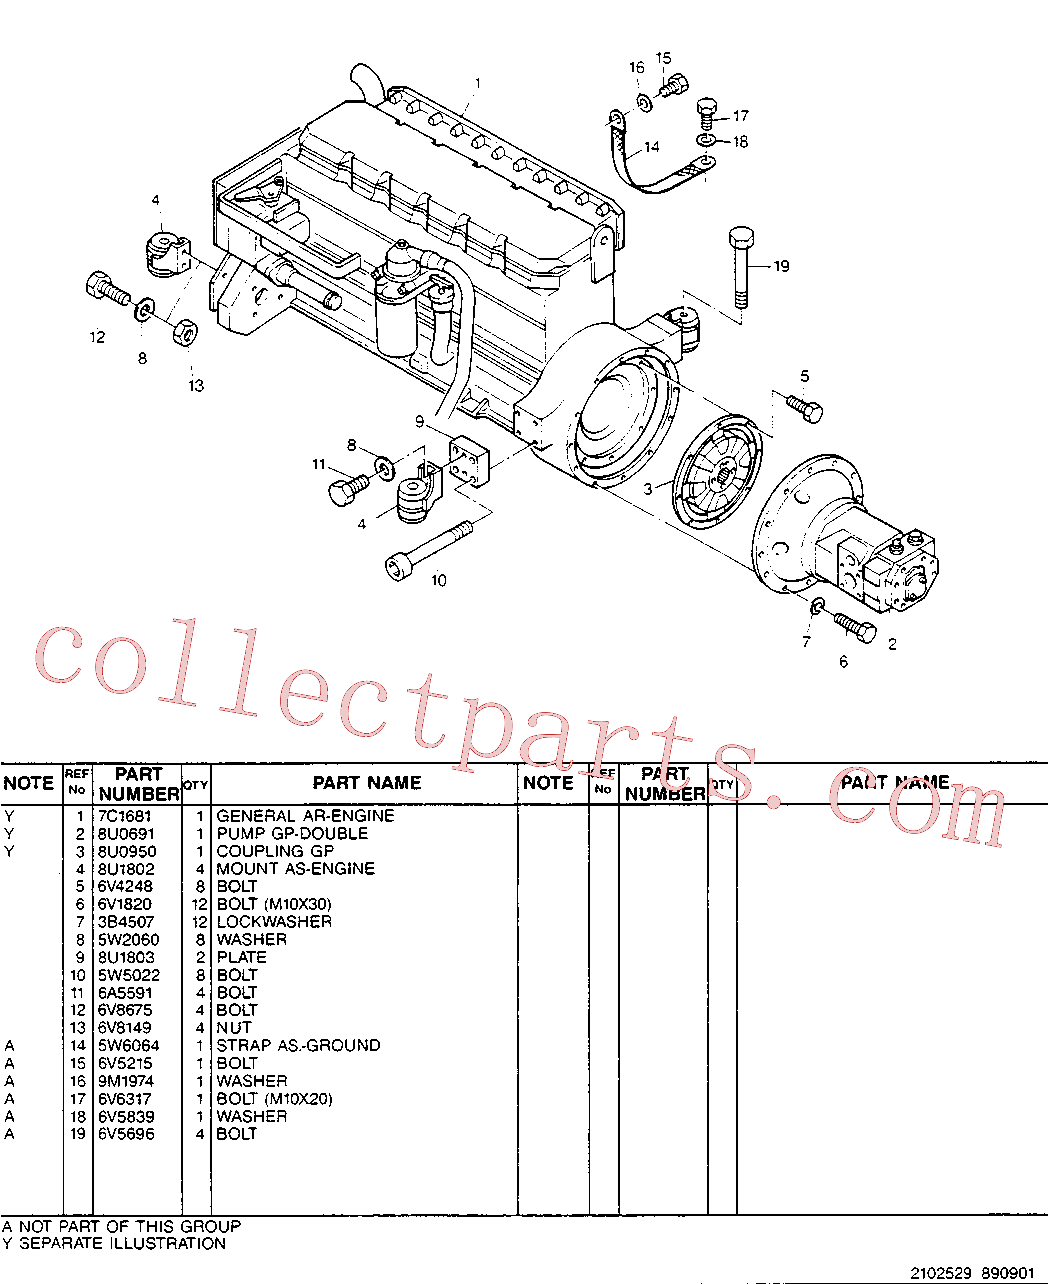 CAT 6V-8004 for 320B N Excavator(EXC) engine installation 5W-9569 Assembly